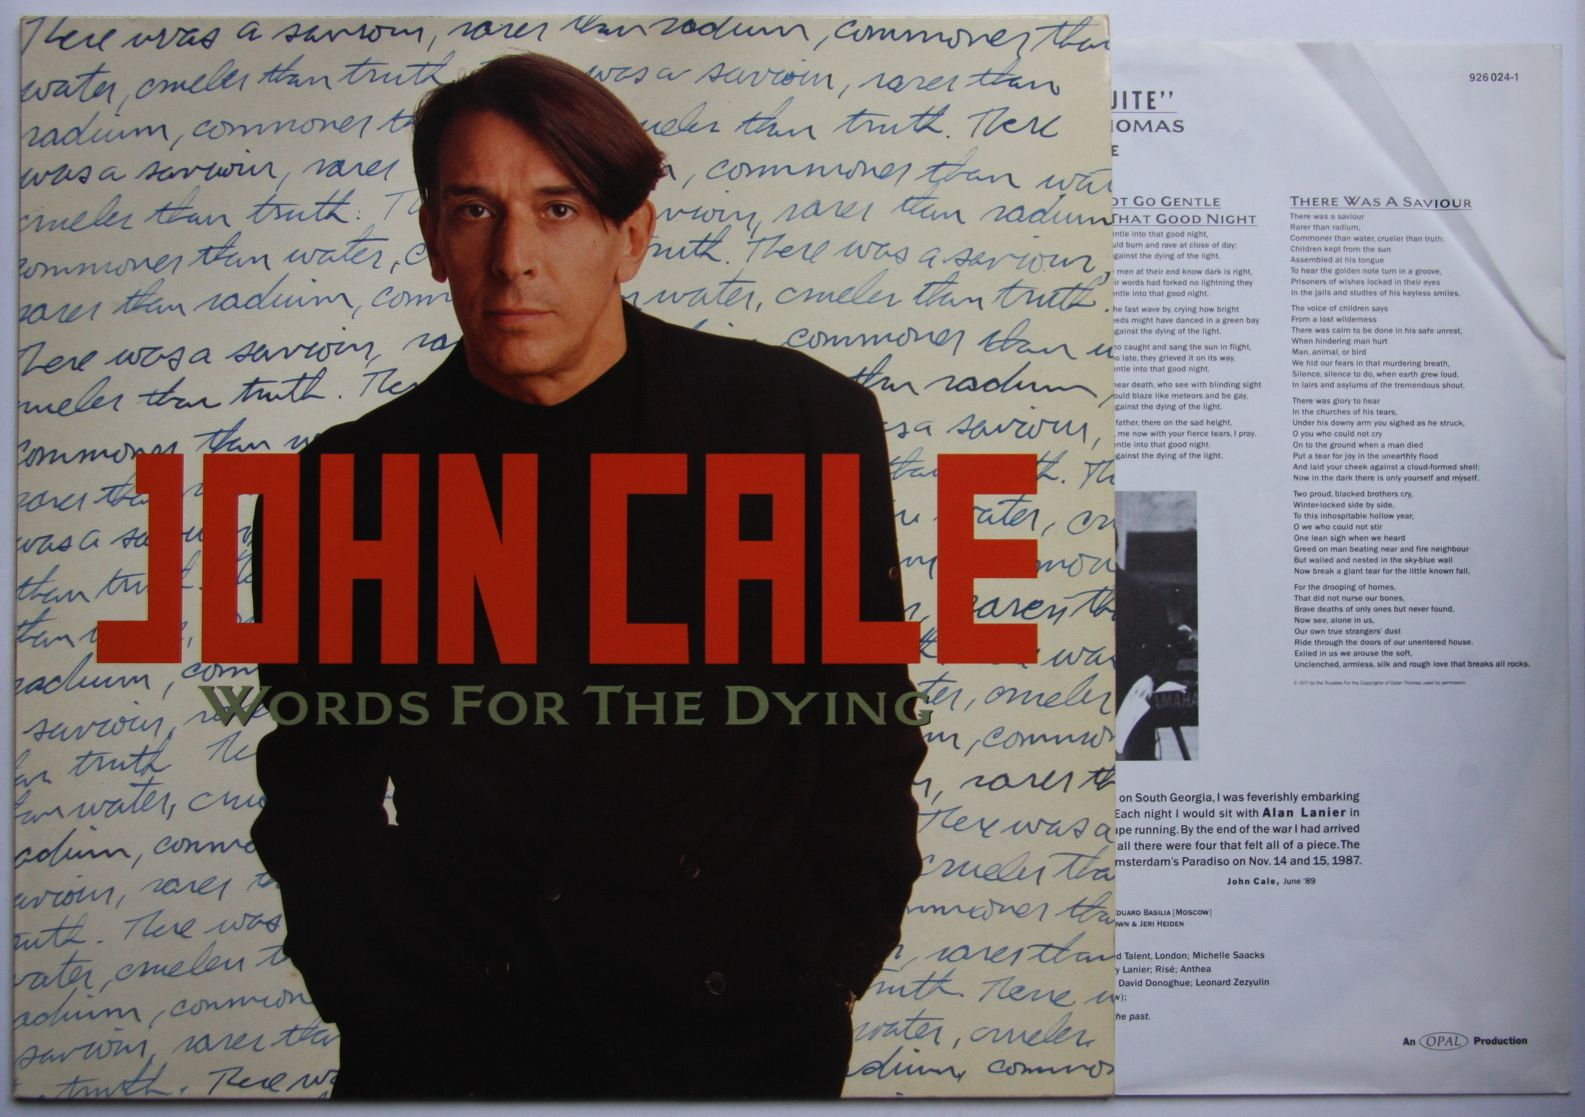 John Cale - Words For The Dying Record